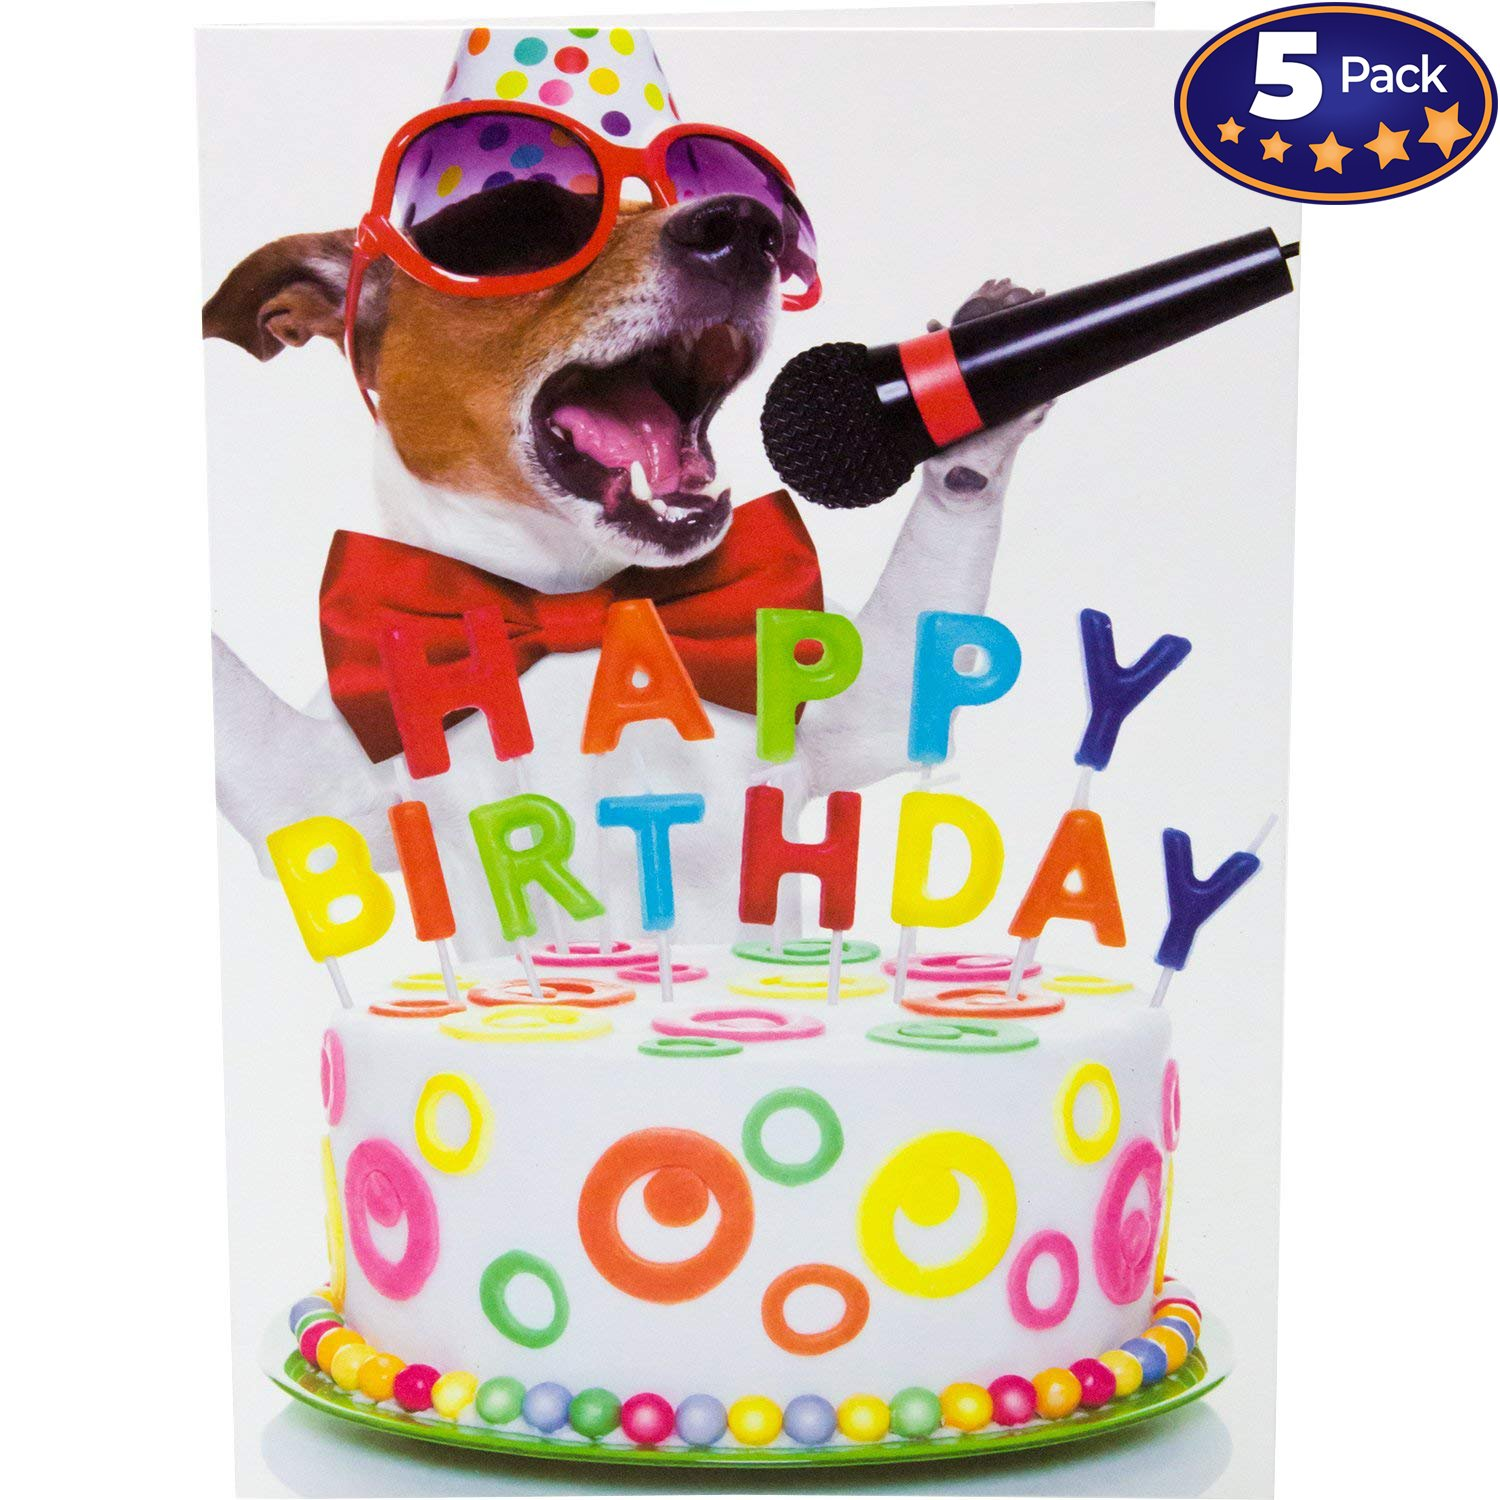 Beacon Streets Singing Dog Happy Birthday Cards 5 Pack This Pup Knows How To Get Down Party Premium Greeting Card Envelopes Value Set